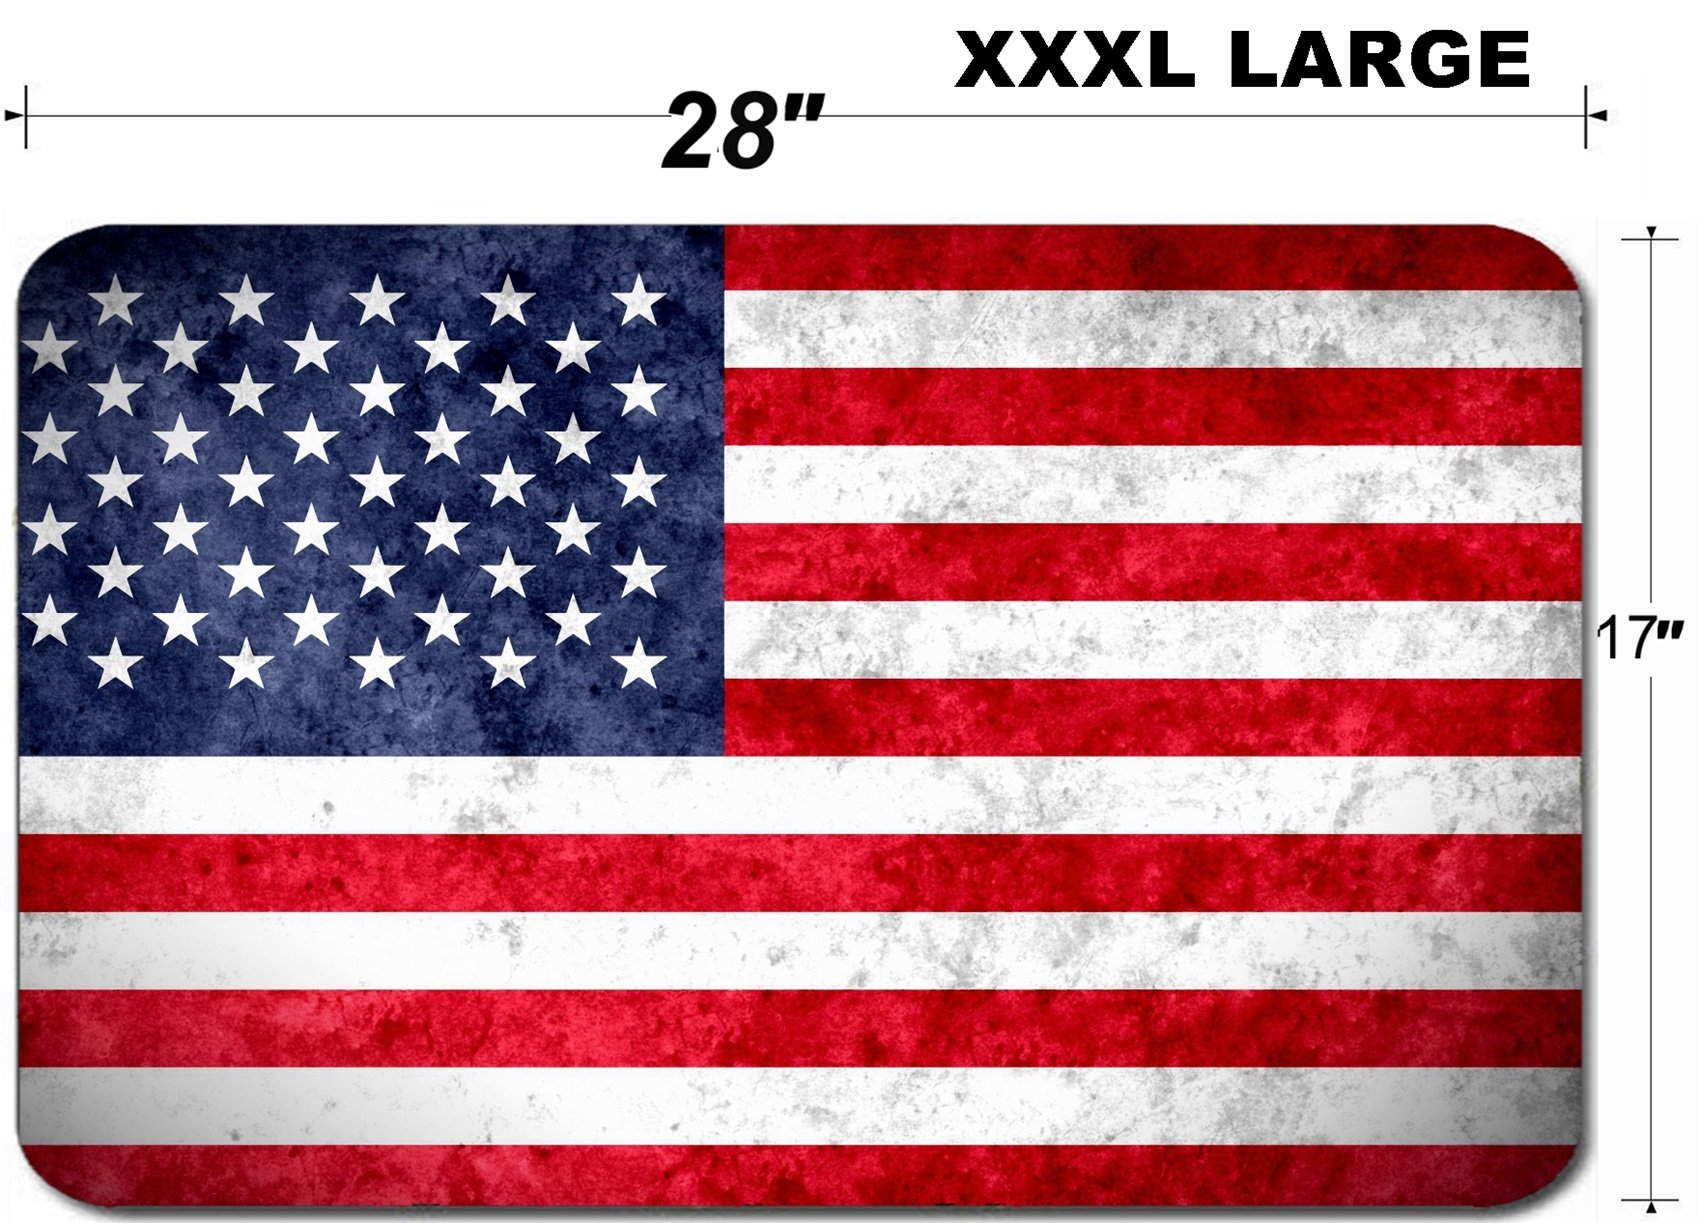 Luxlady Large Table Mat Non-Slip Natural Rubber Desk Pads IMAGE ID 31068281 Aged textured and colorful flag of United Stated of America